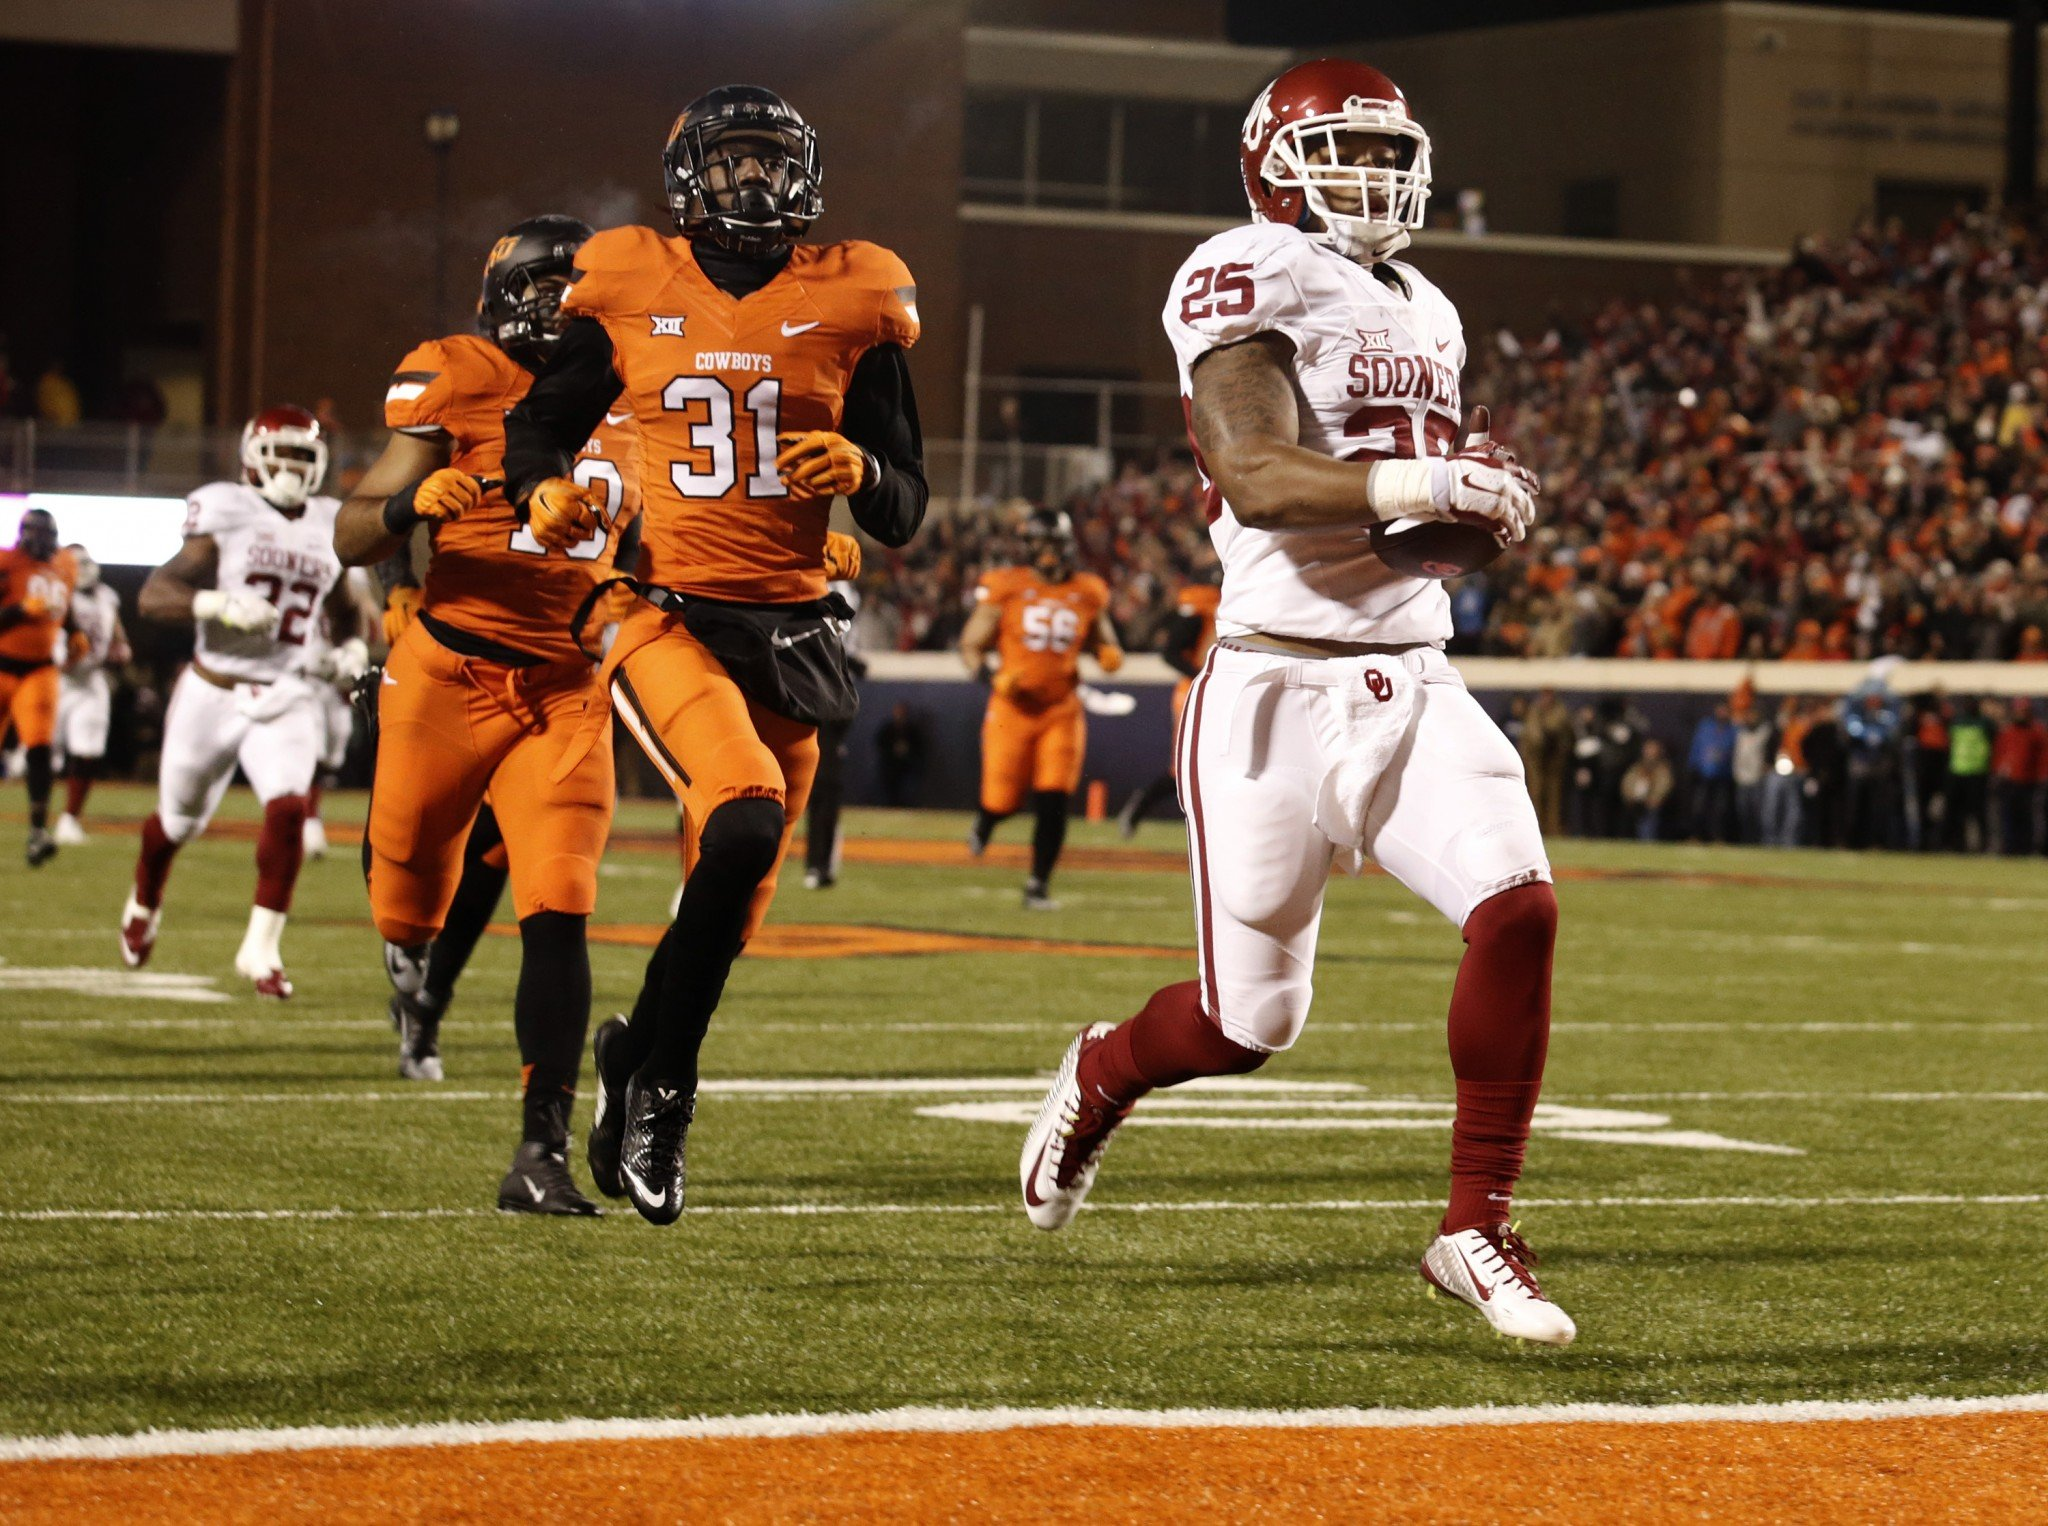 If the Big 12 had a true title game in 2016, the Oklahoma schools would play twice in two weeks. (Getty)